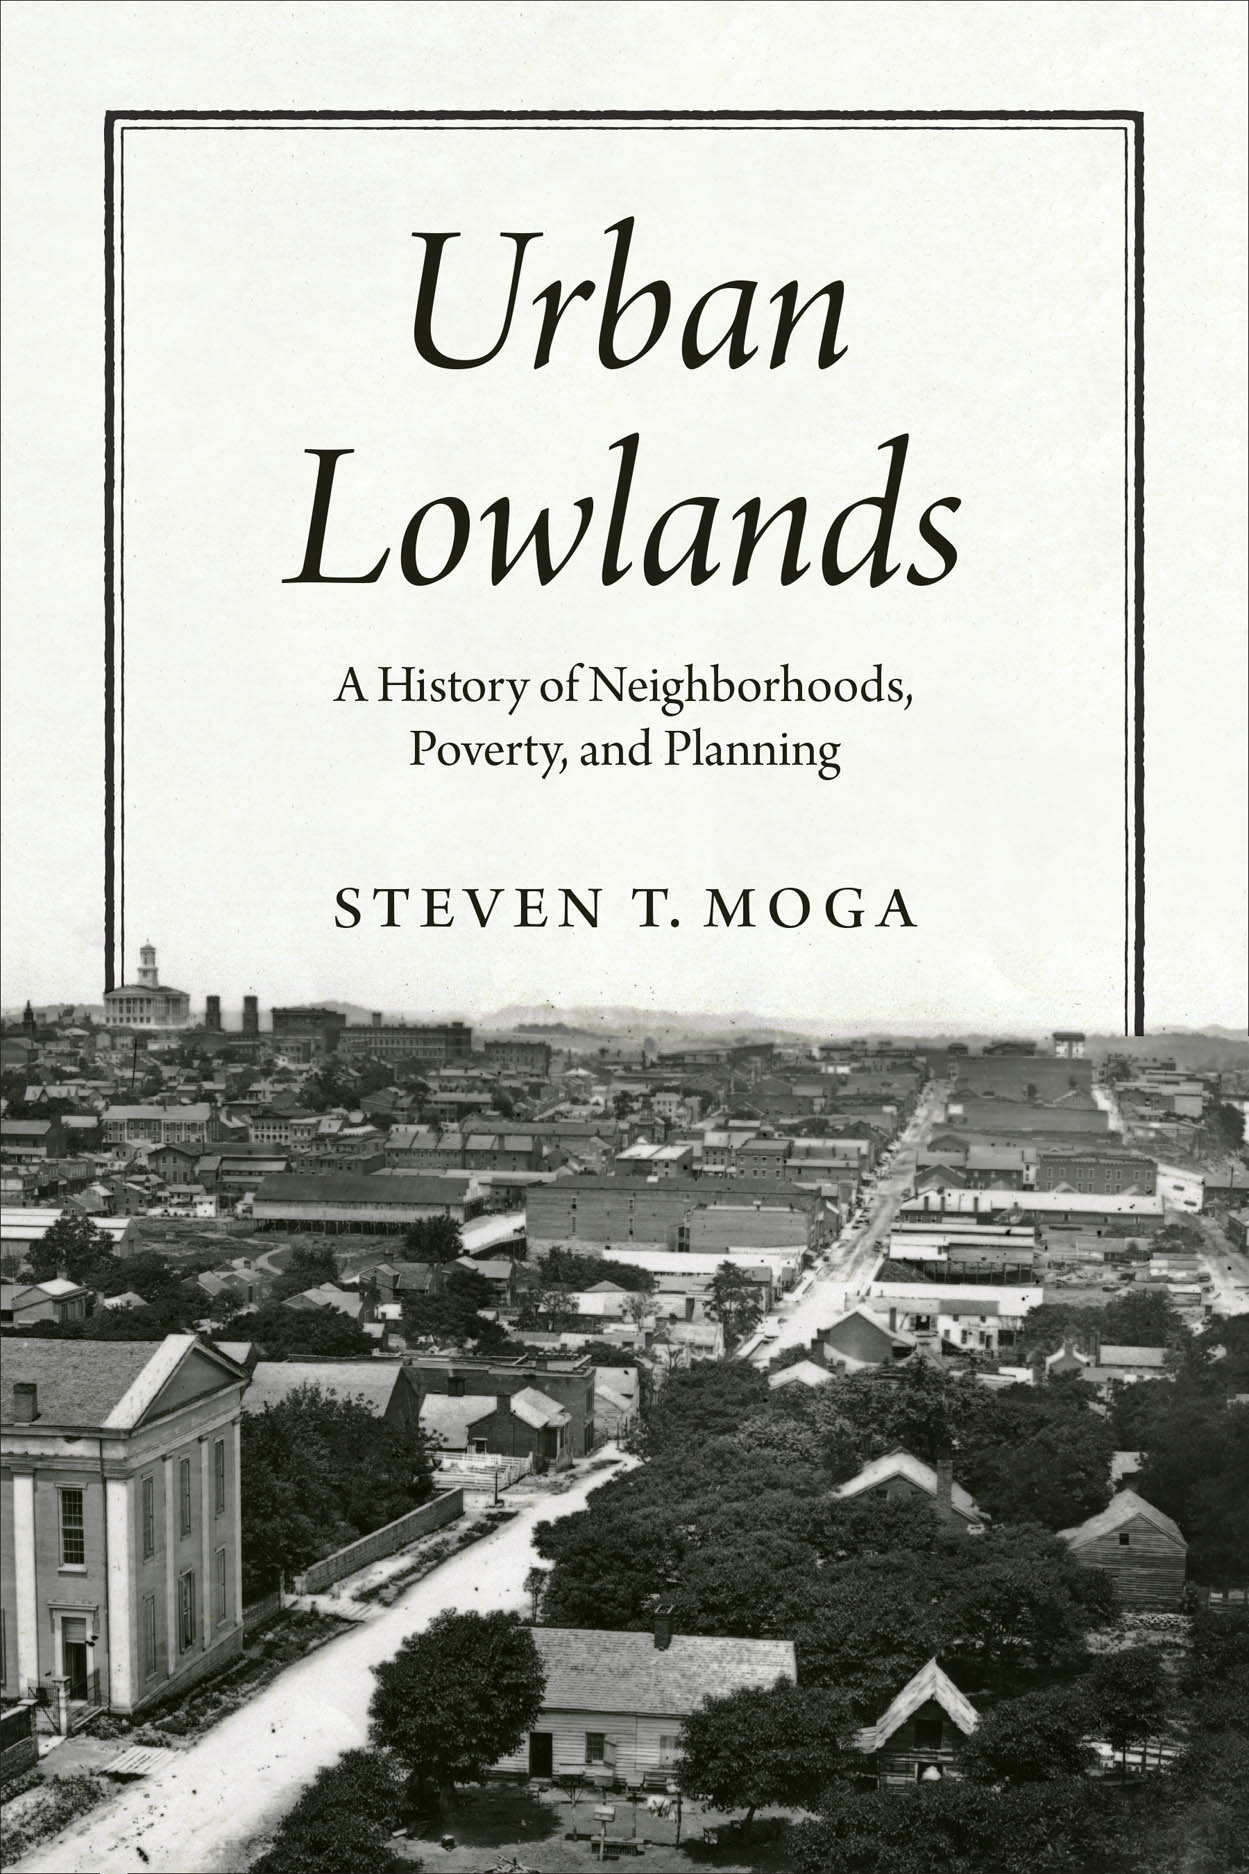 Urban Lowlands: A History of Neighborhoods, Poverty, and Planning